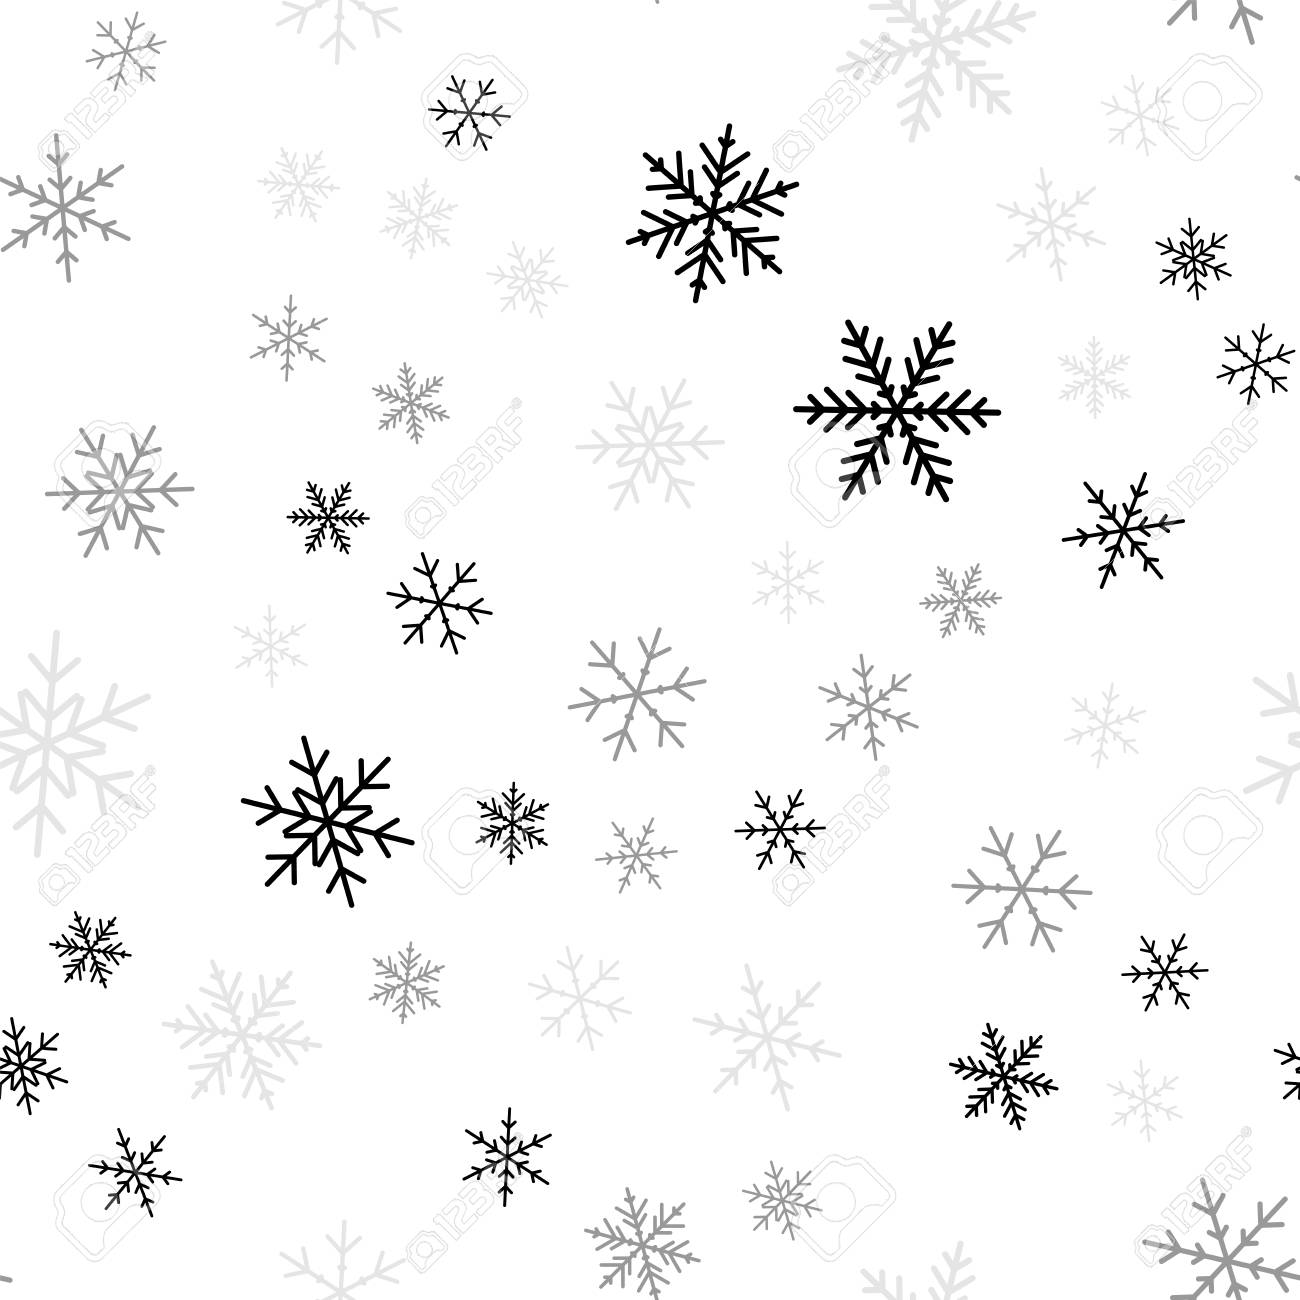 Black snowflakes seamless pattern on white Christmas background. Chaotic scattered black snowflakes. Delightful Christmas creative pattern. Vector illustration. - 95535633